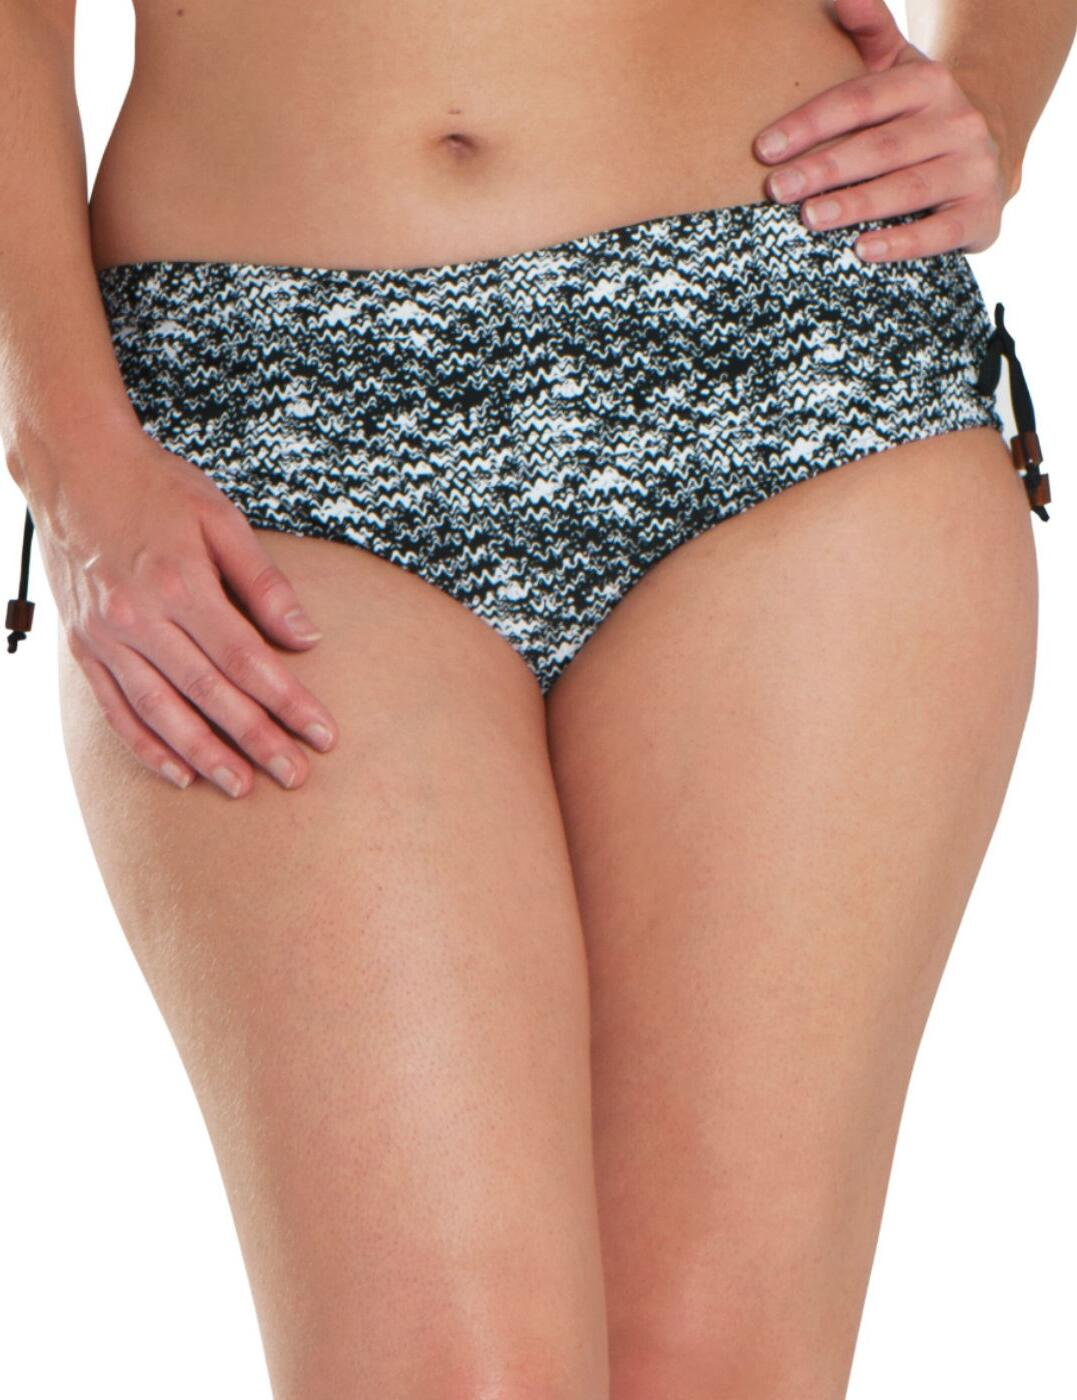 CS4903 Curvy Kate Diffuse Retro Bikini Short - CS4903 Black/White